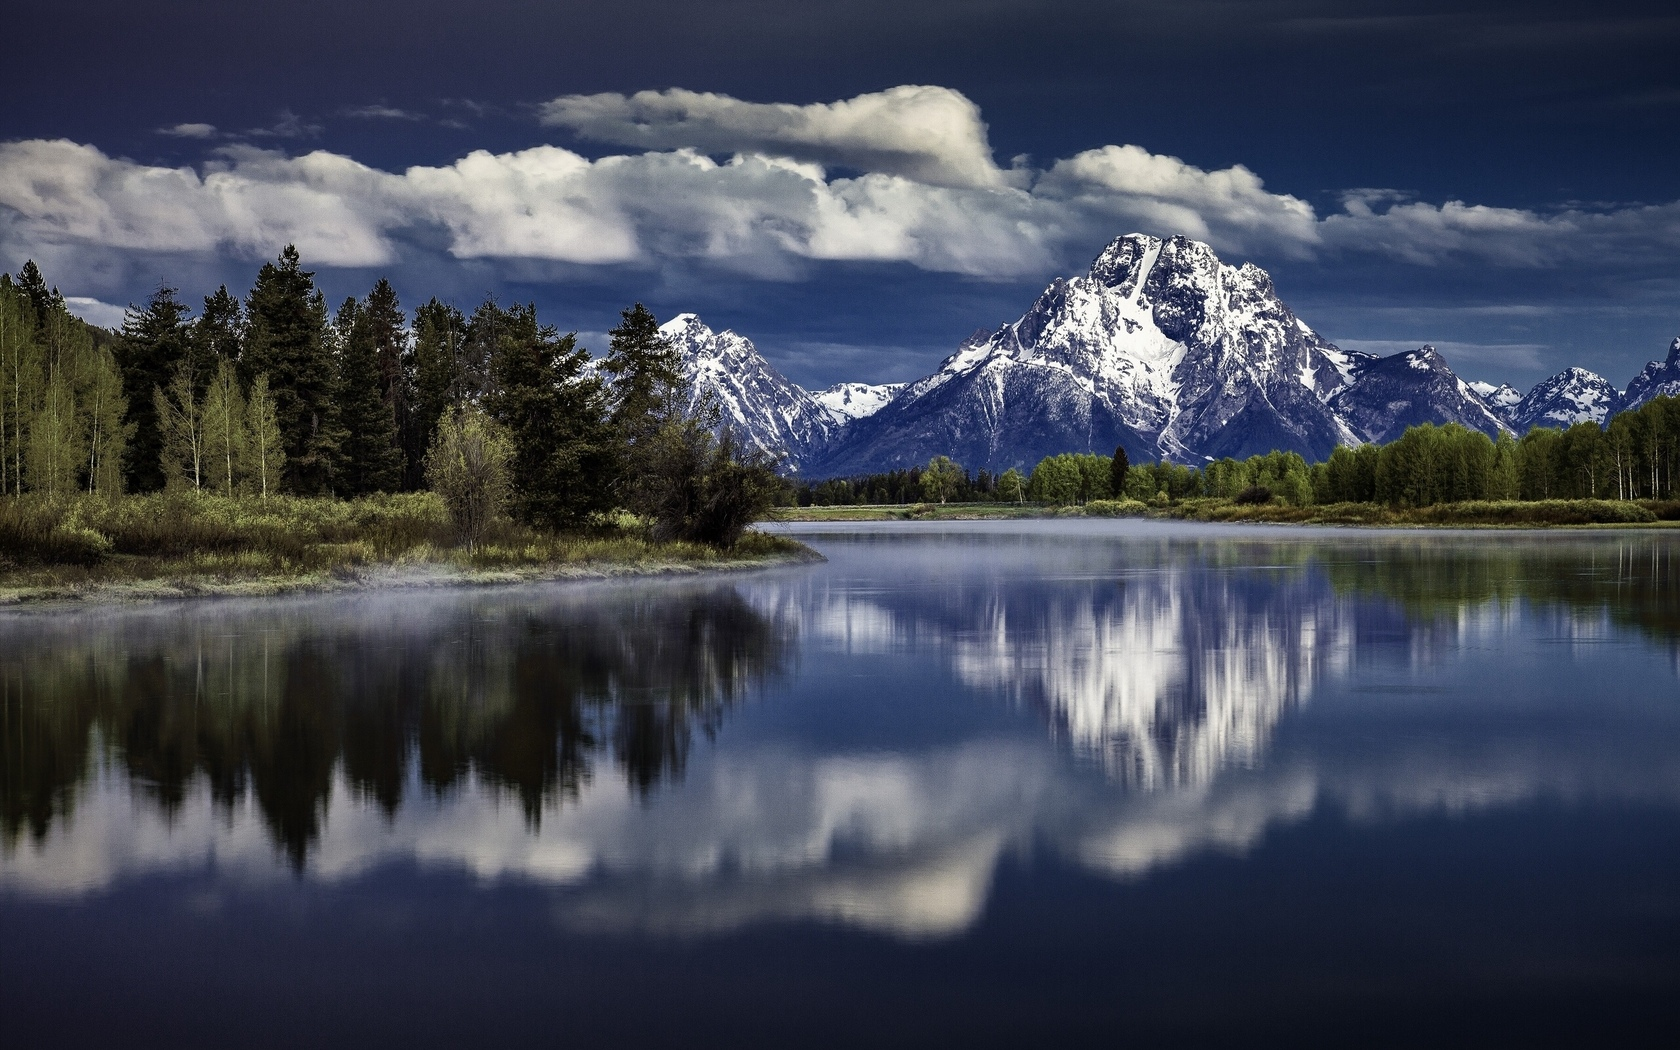 grand teton national park, река снейк, mount moran, wyoming, snake river